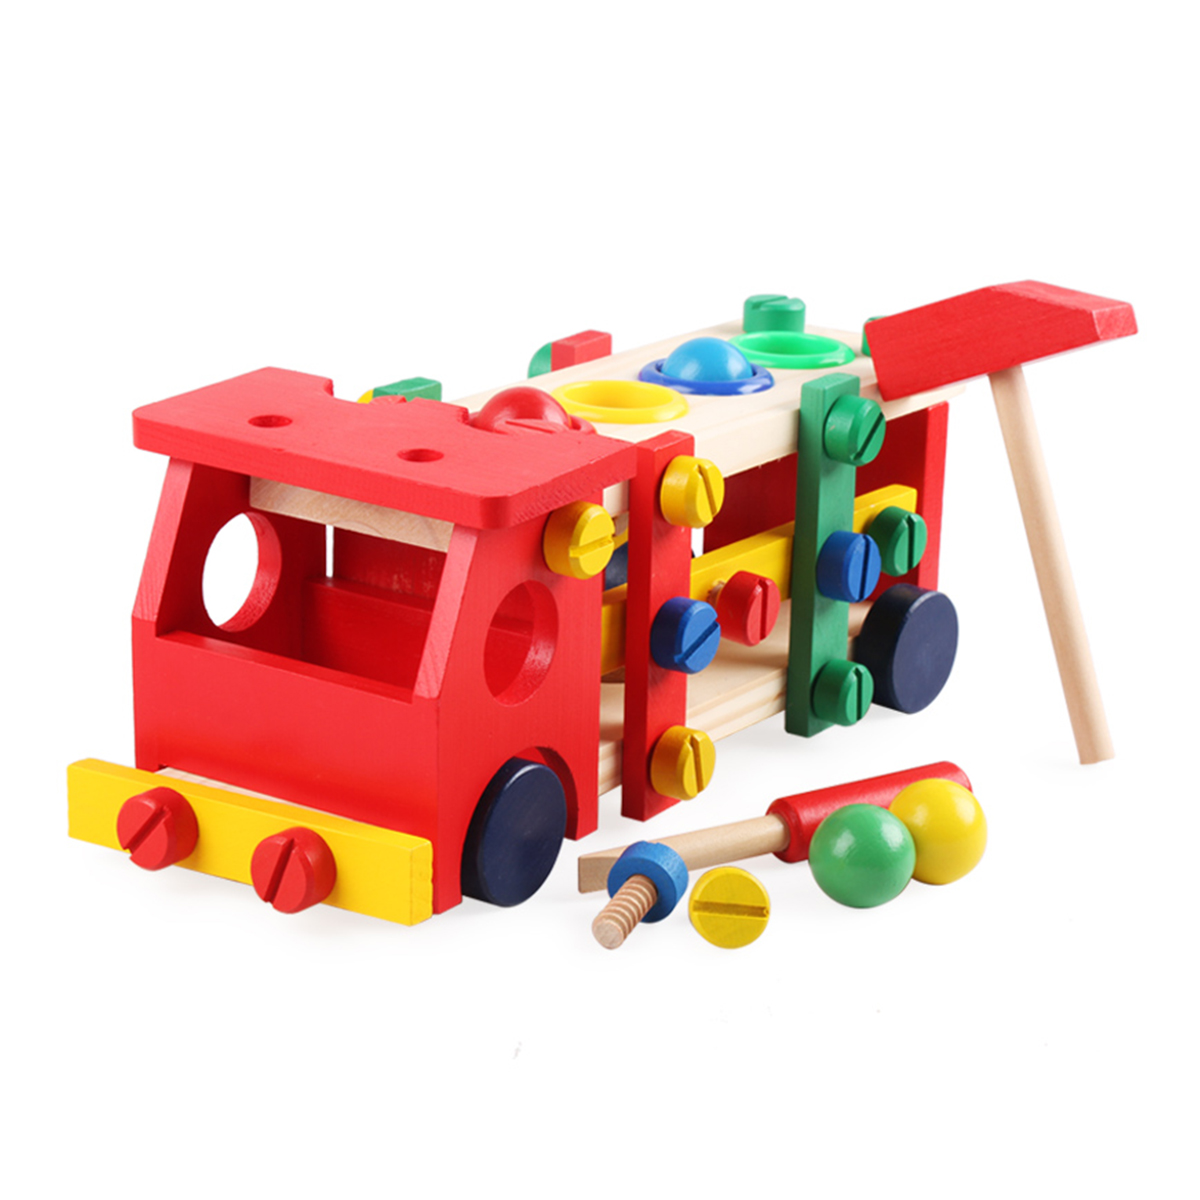 DIY Educational Toys Kids Exercise Practical Wooden IQ ...